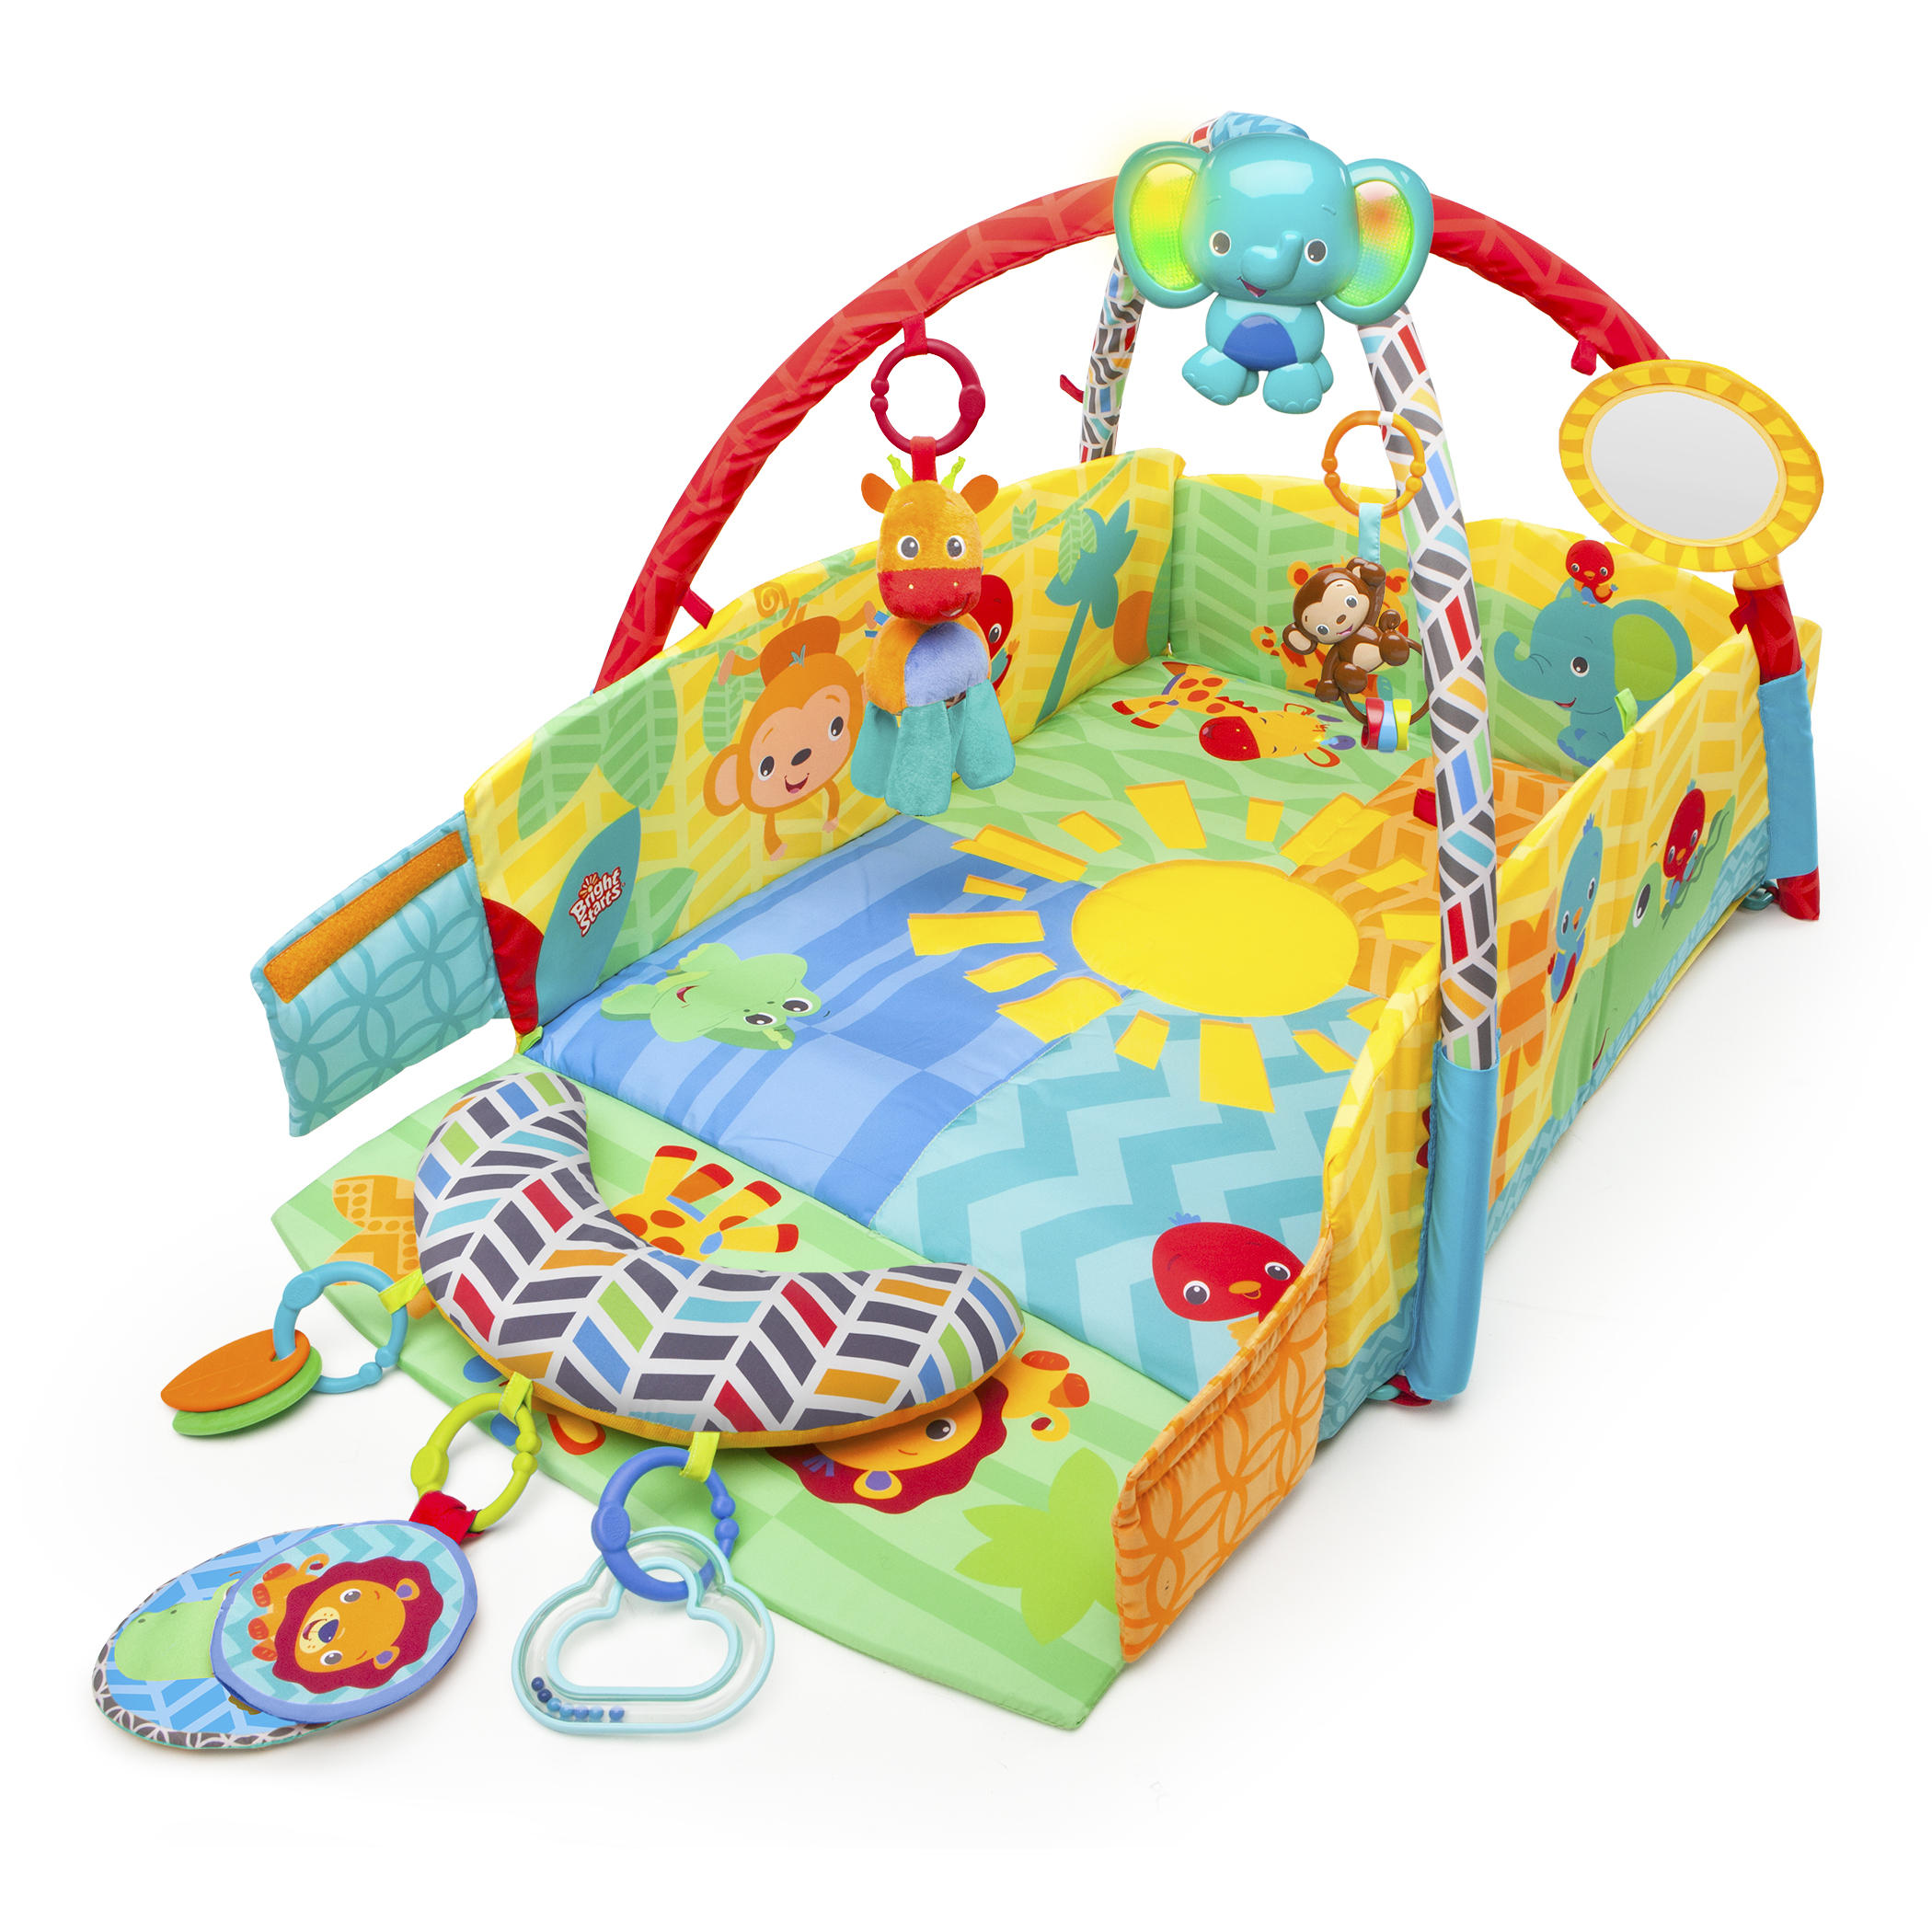 Bright Starts Sunny Safari Baby's Play Place Activity Gym